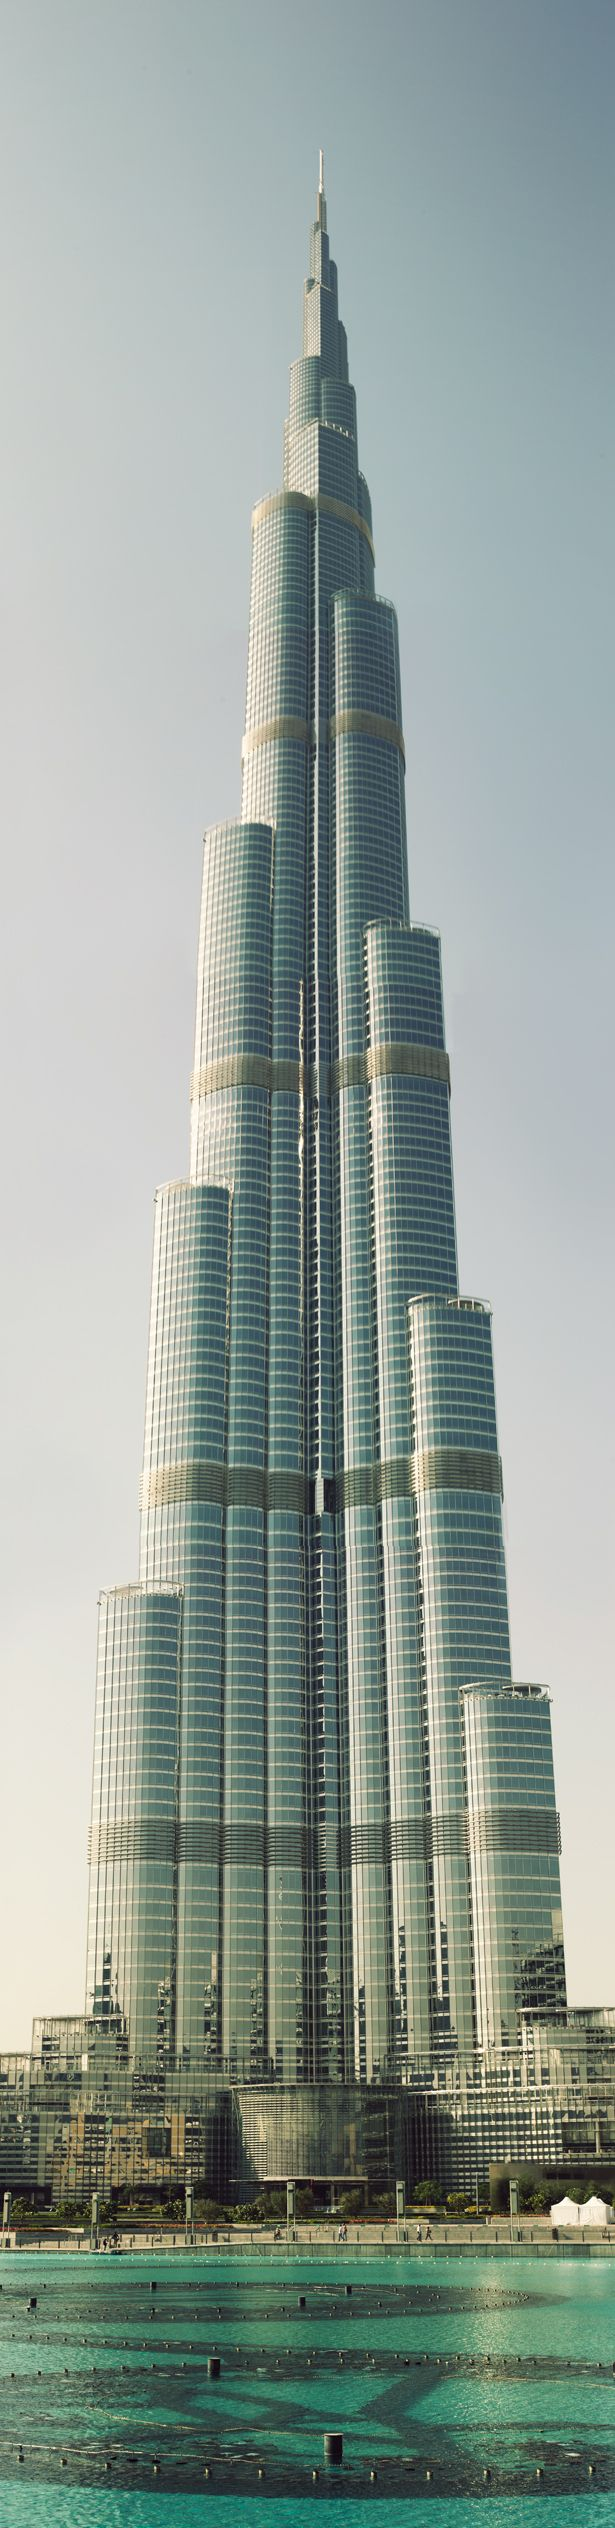 Tallest building in the world, The Burj Khalifa in Dubai.